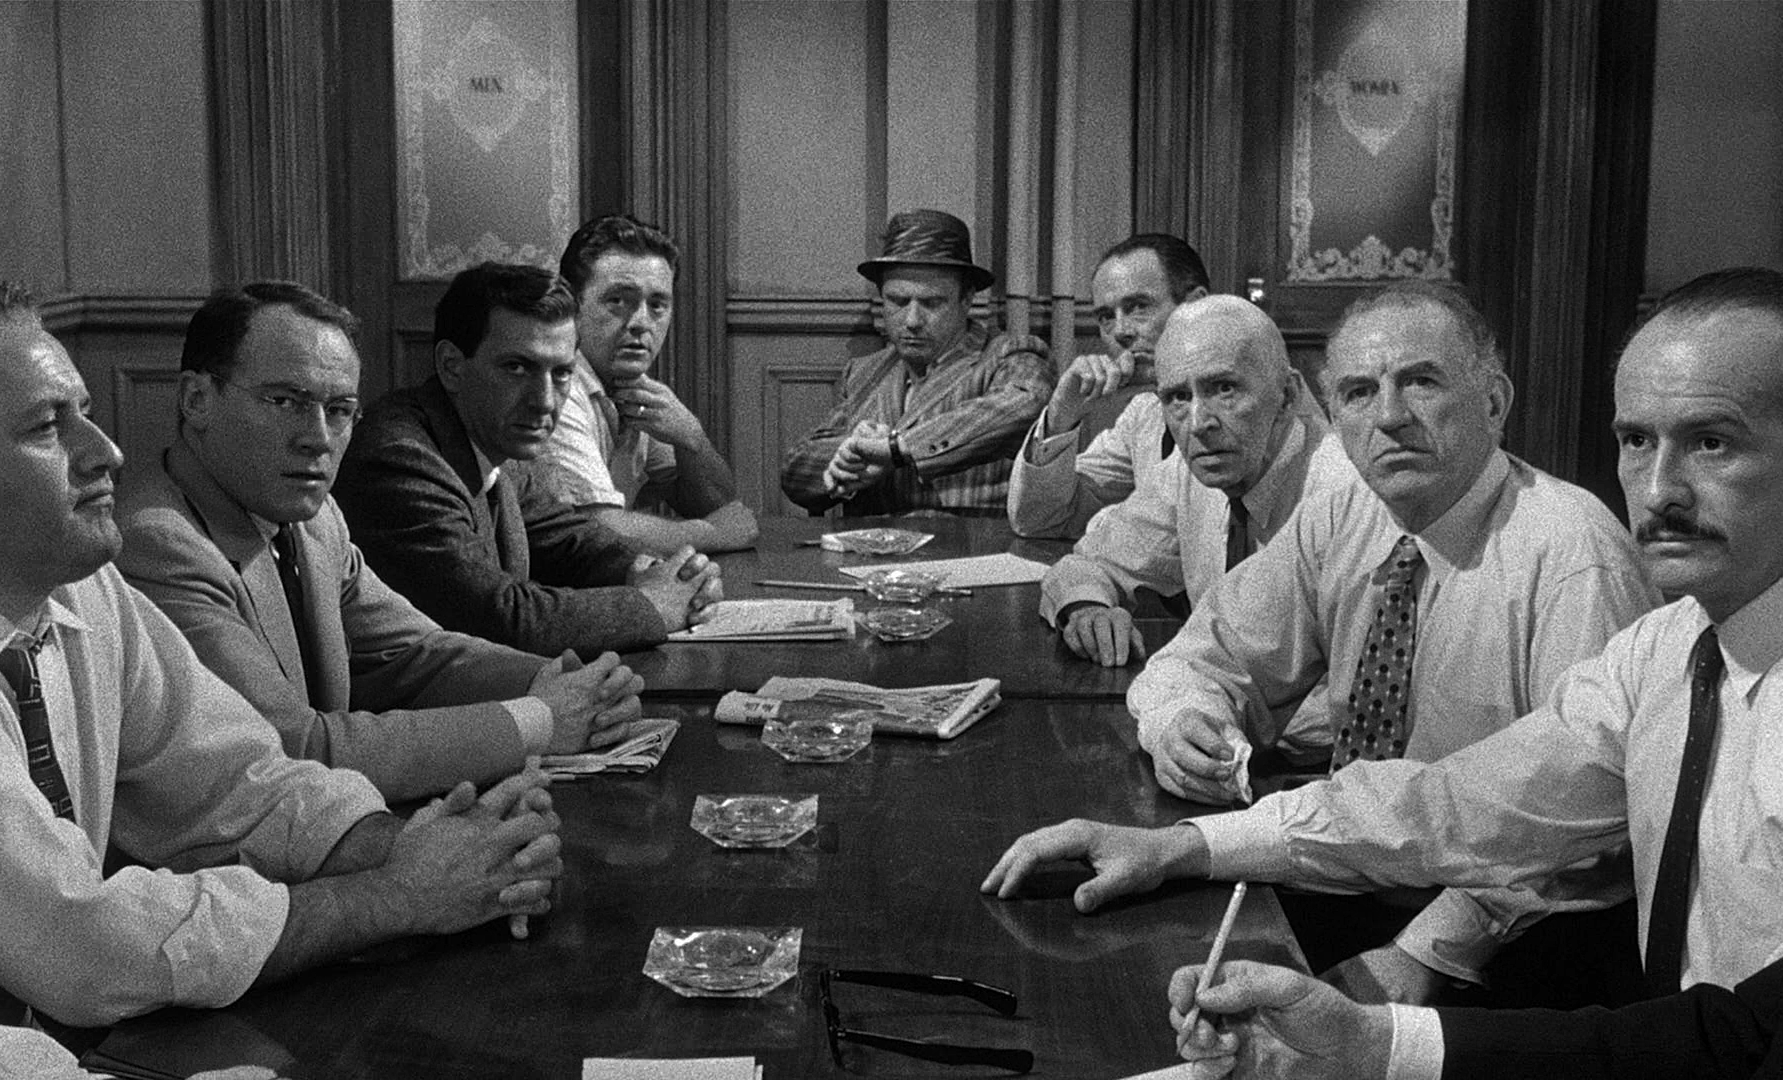 12 Angry Men: Jurors around the table